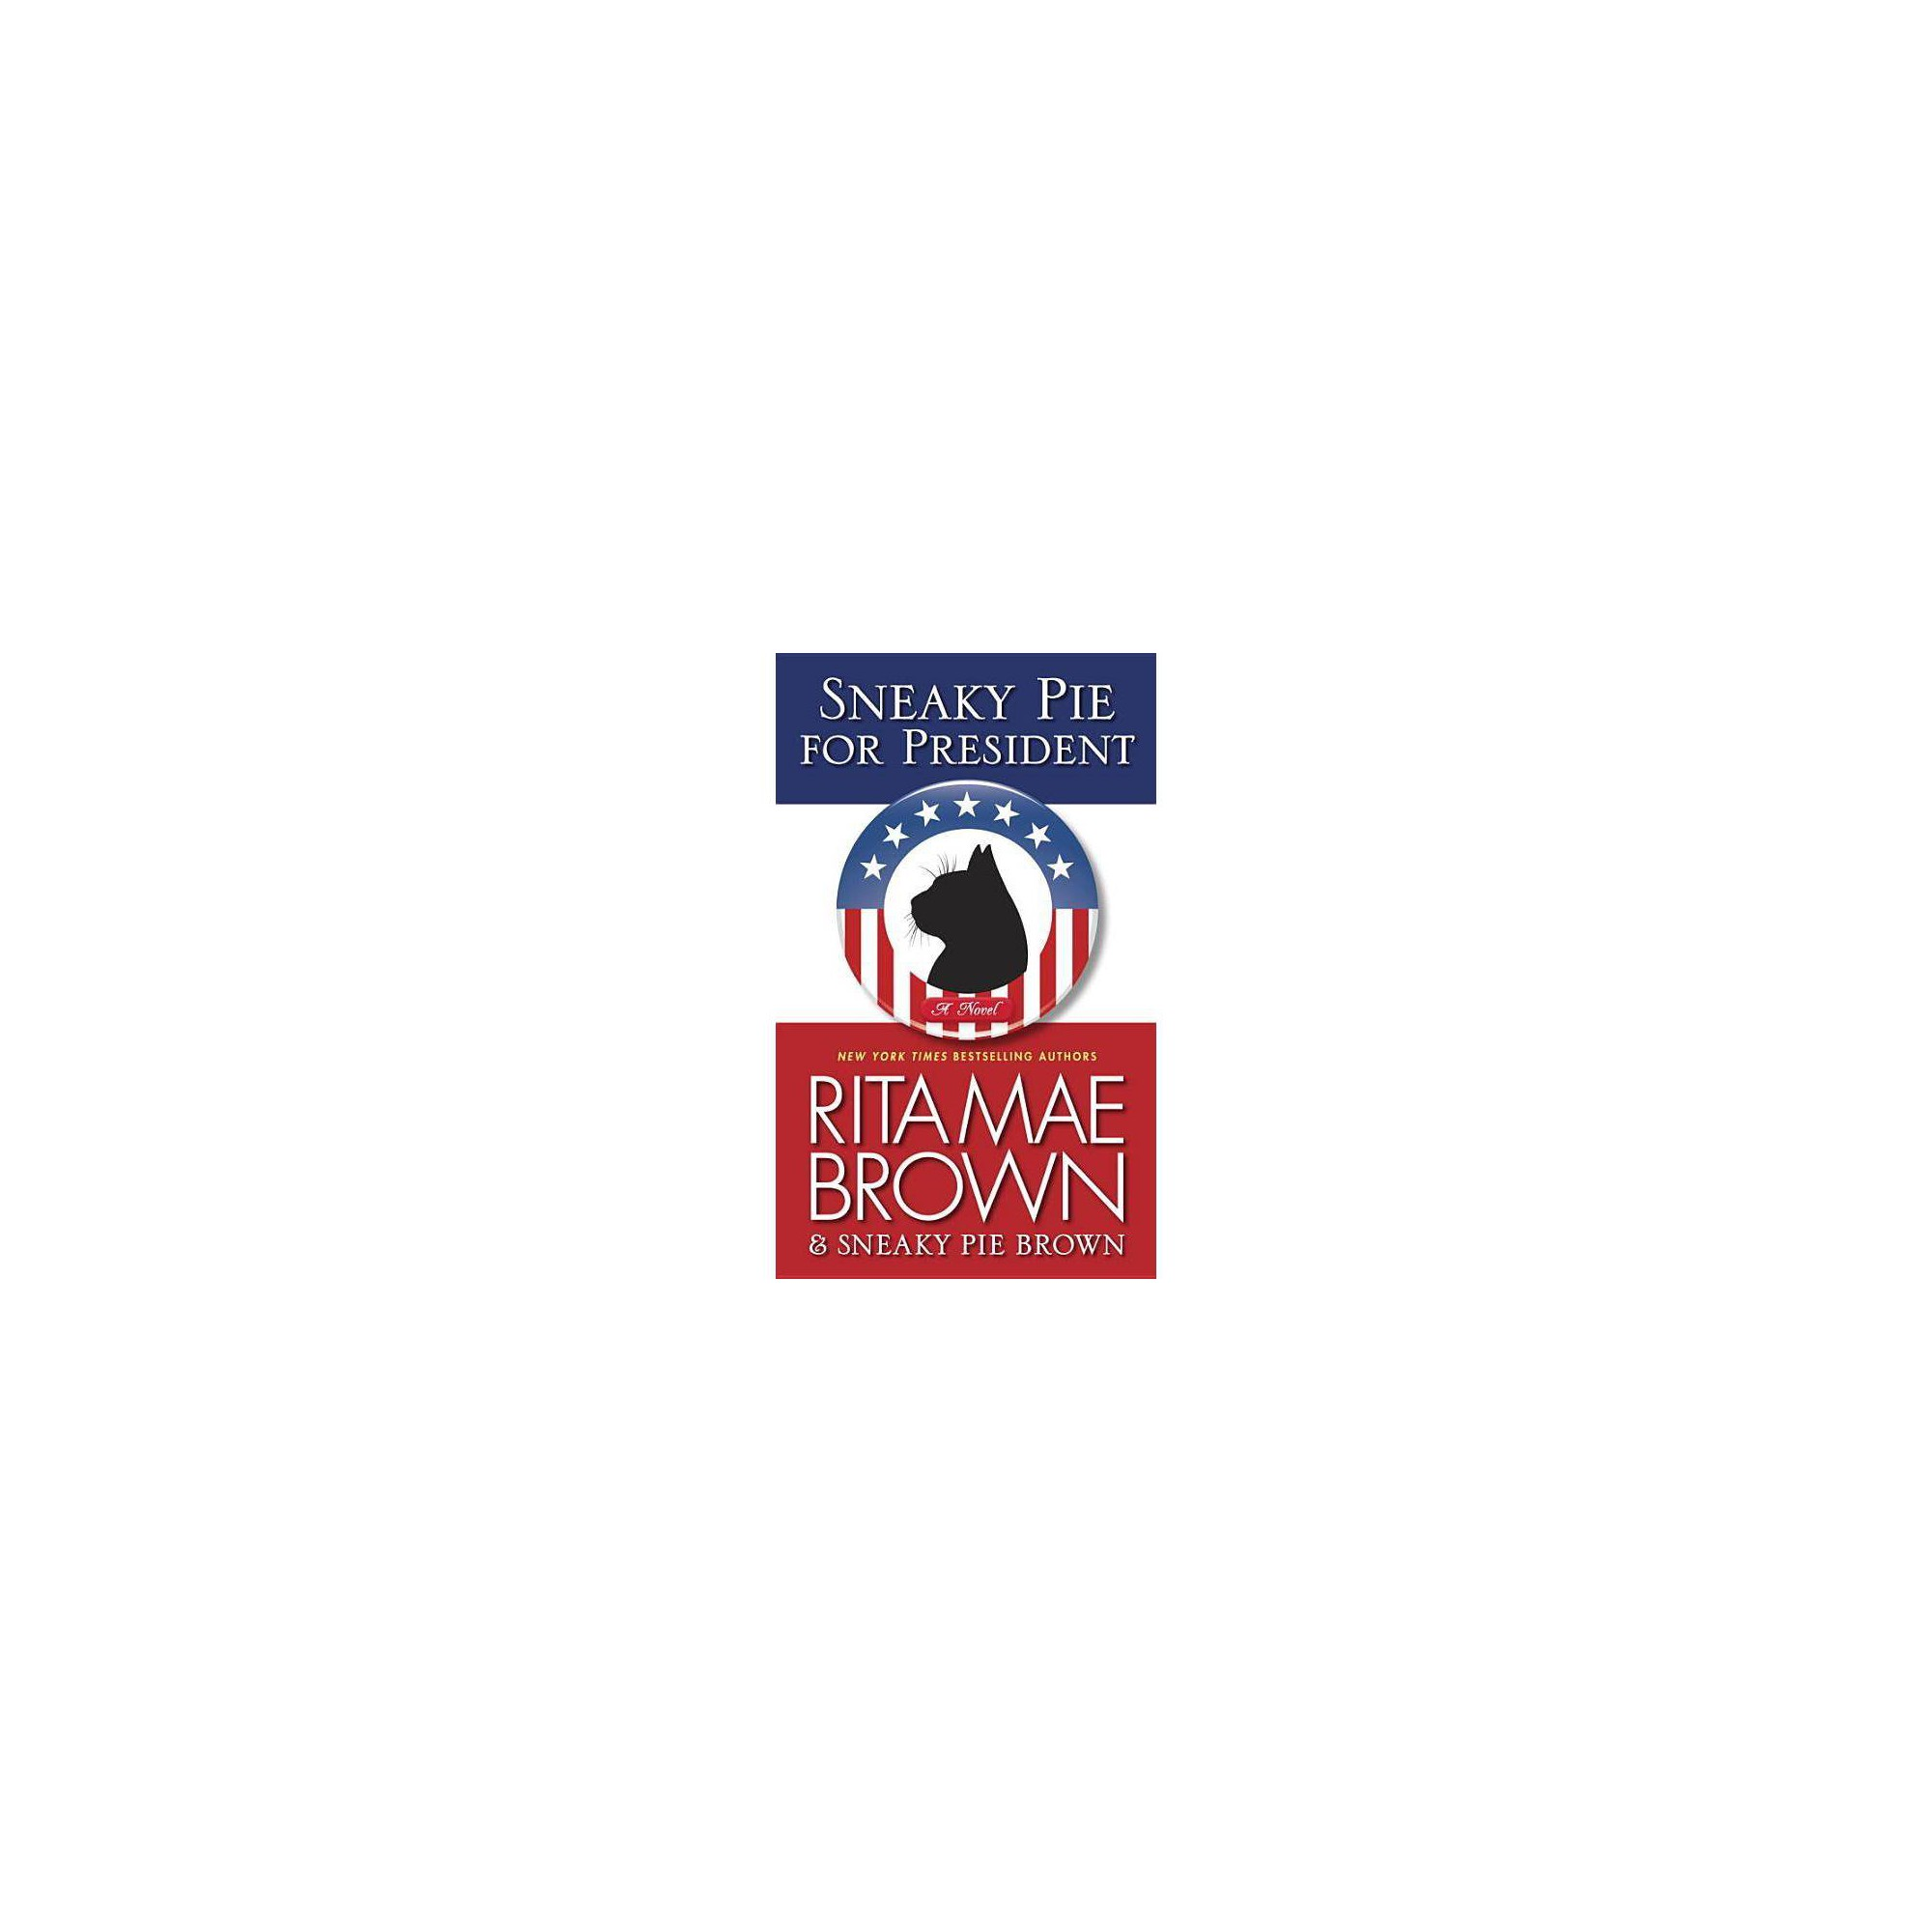 Sneaky Pie for President - (Mrs. Murphy) by Rita Mae Brown (Paperback)